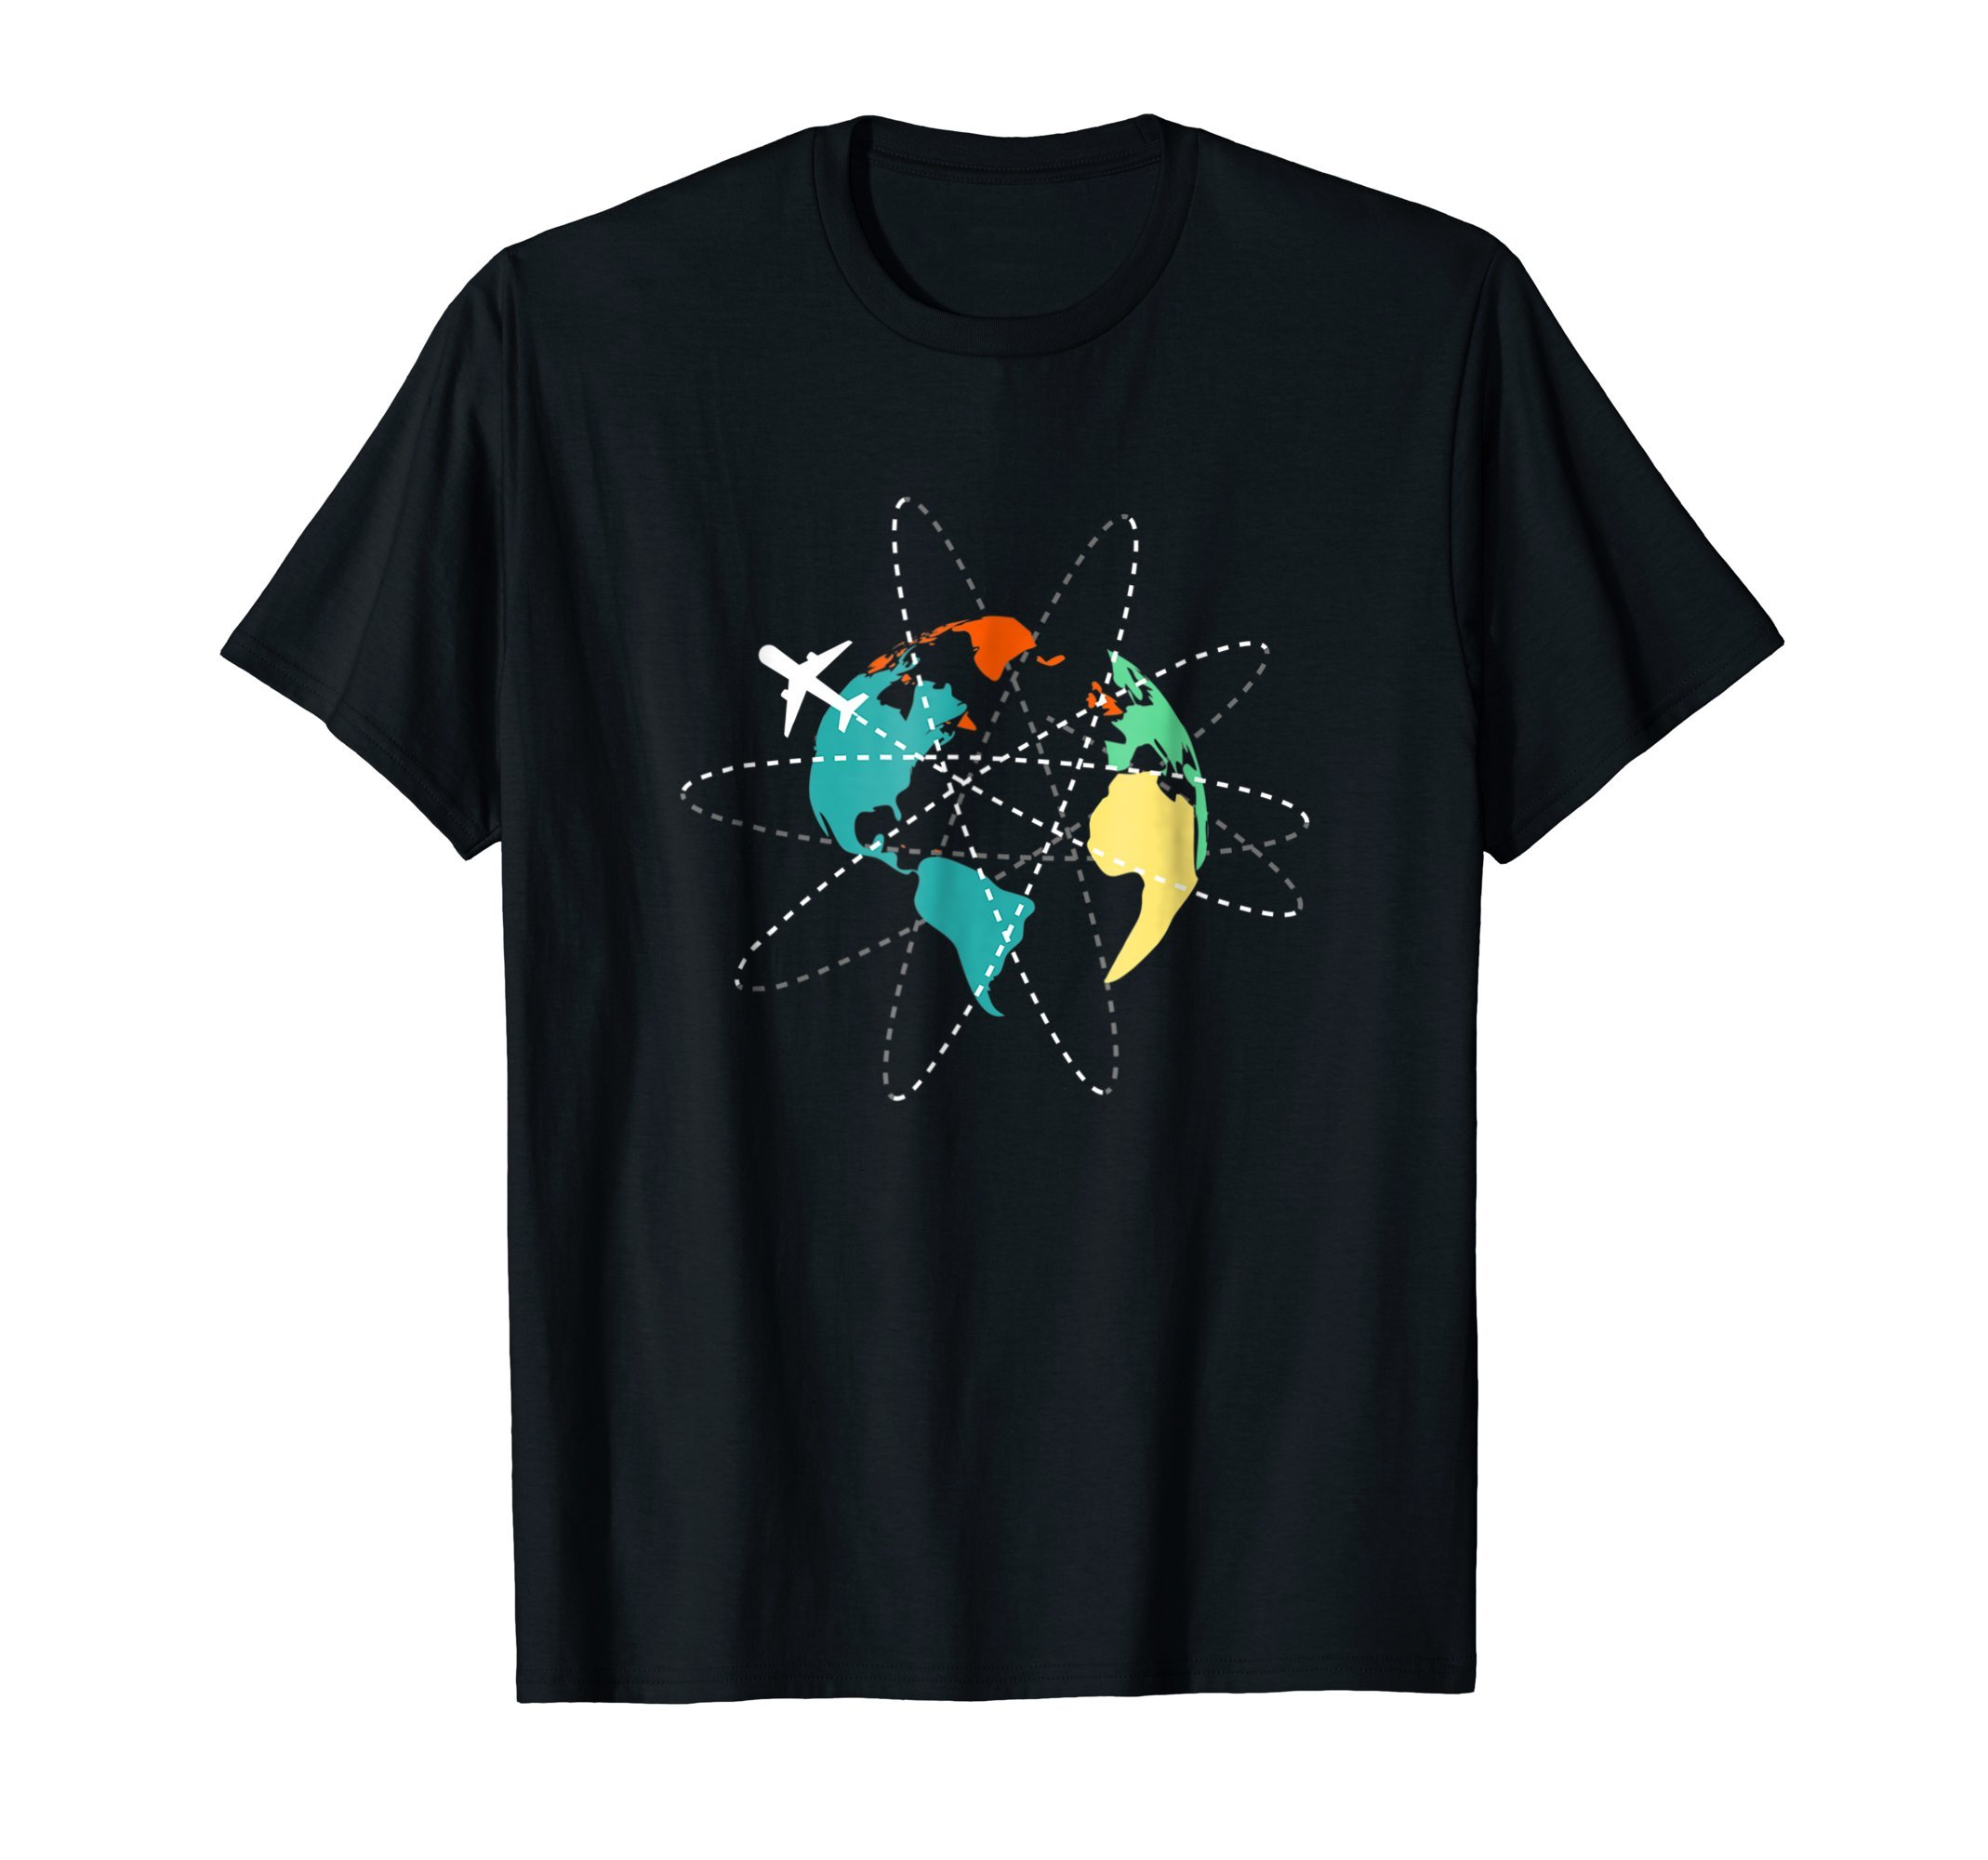 Airplane traveling the world,colorful map traveler tee shirt by KH Travel shirts (Image #1)